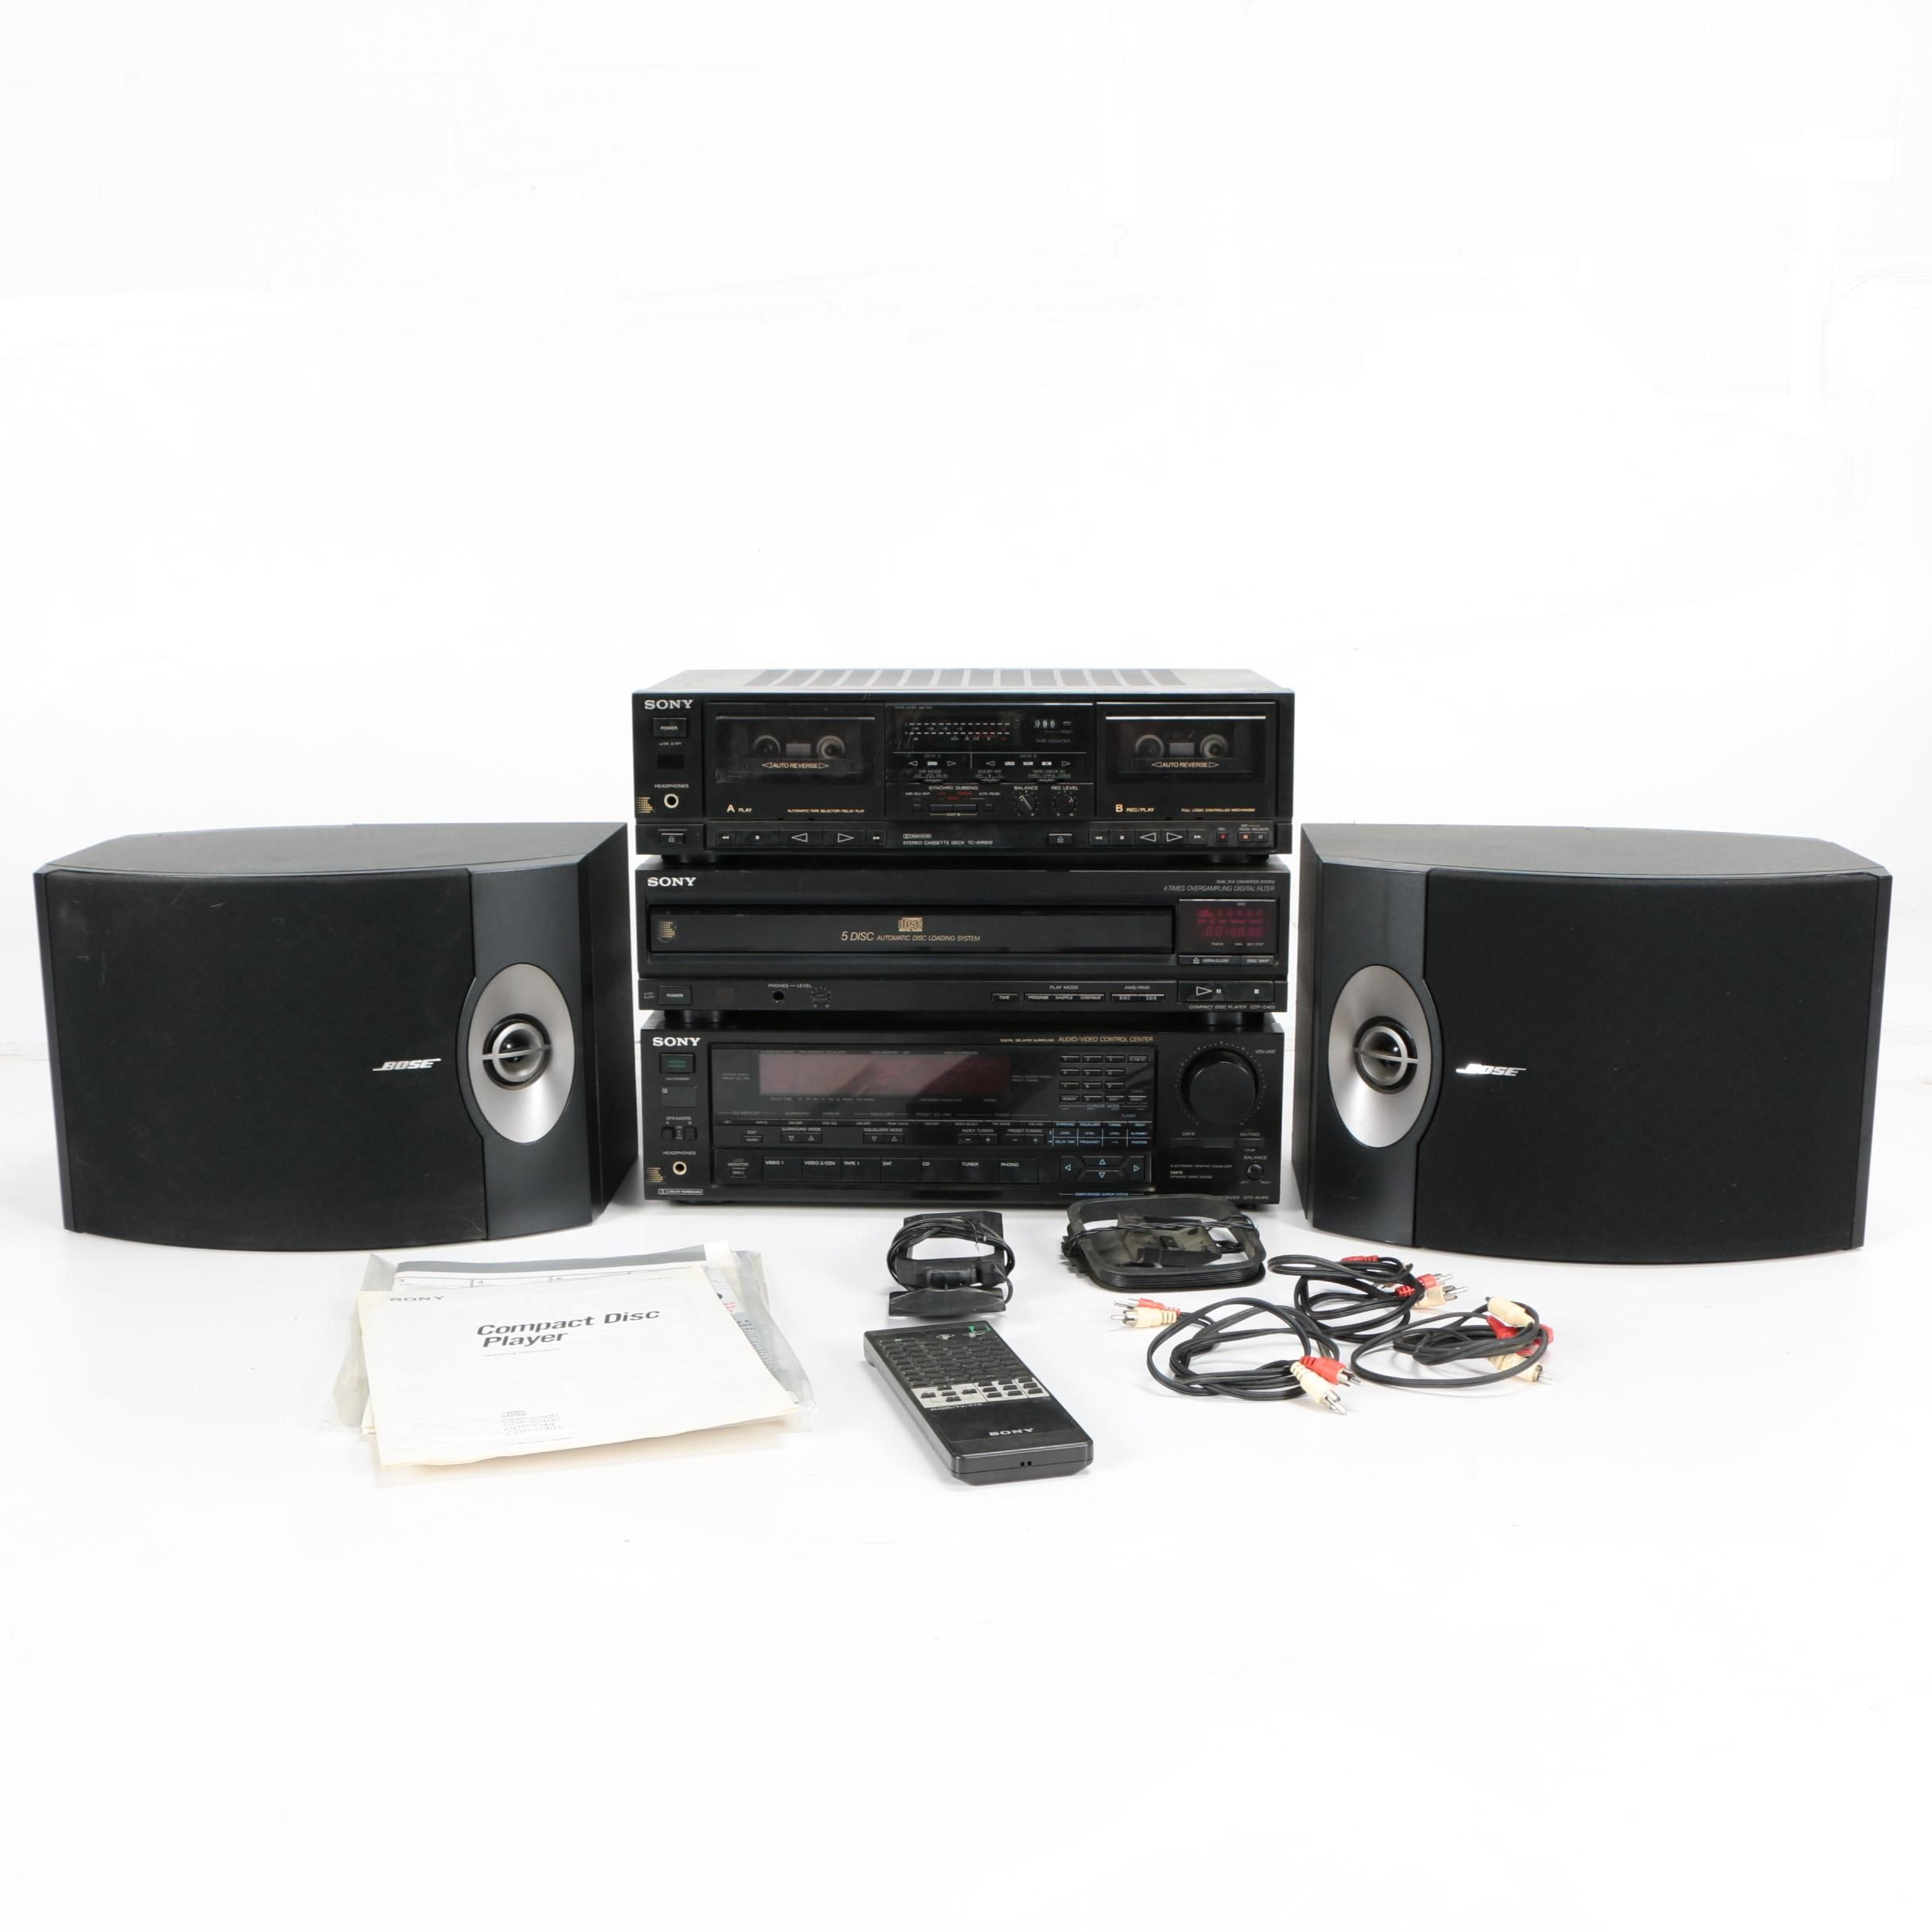 Bose 301 Series V Direct/Reflecting Shelf Speakers and Sony Stereo System